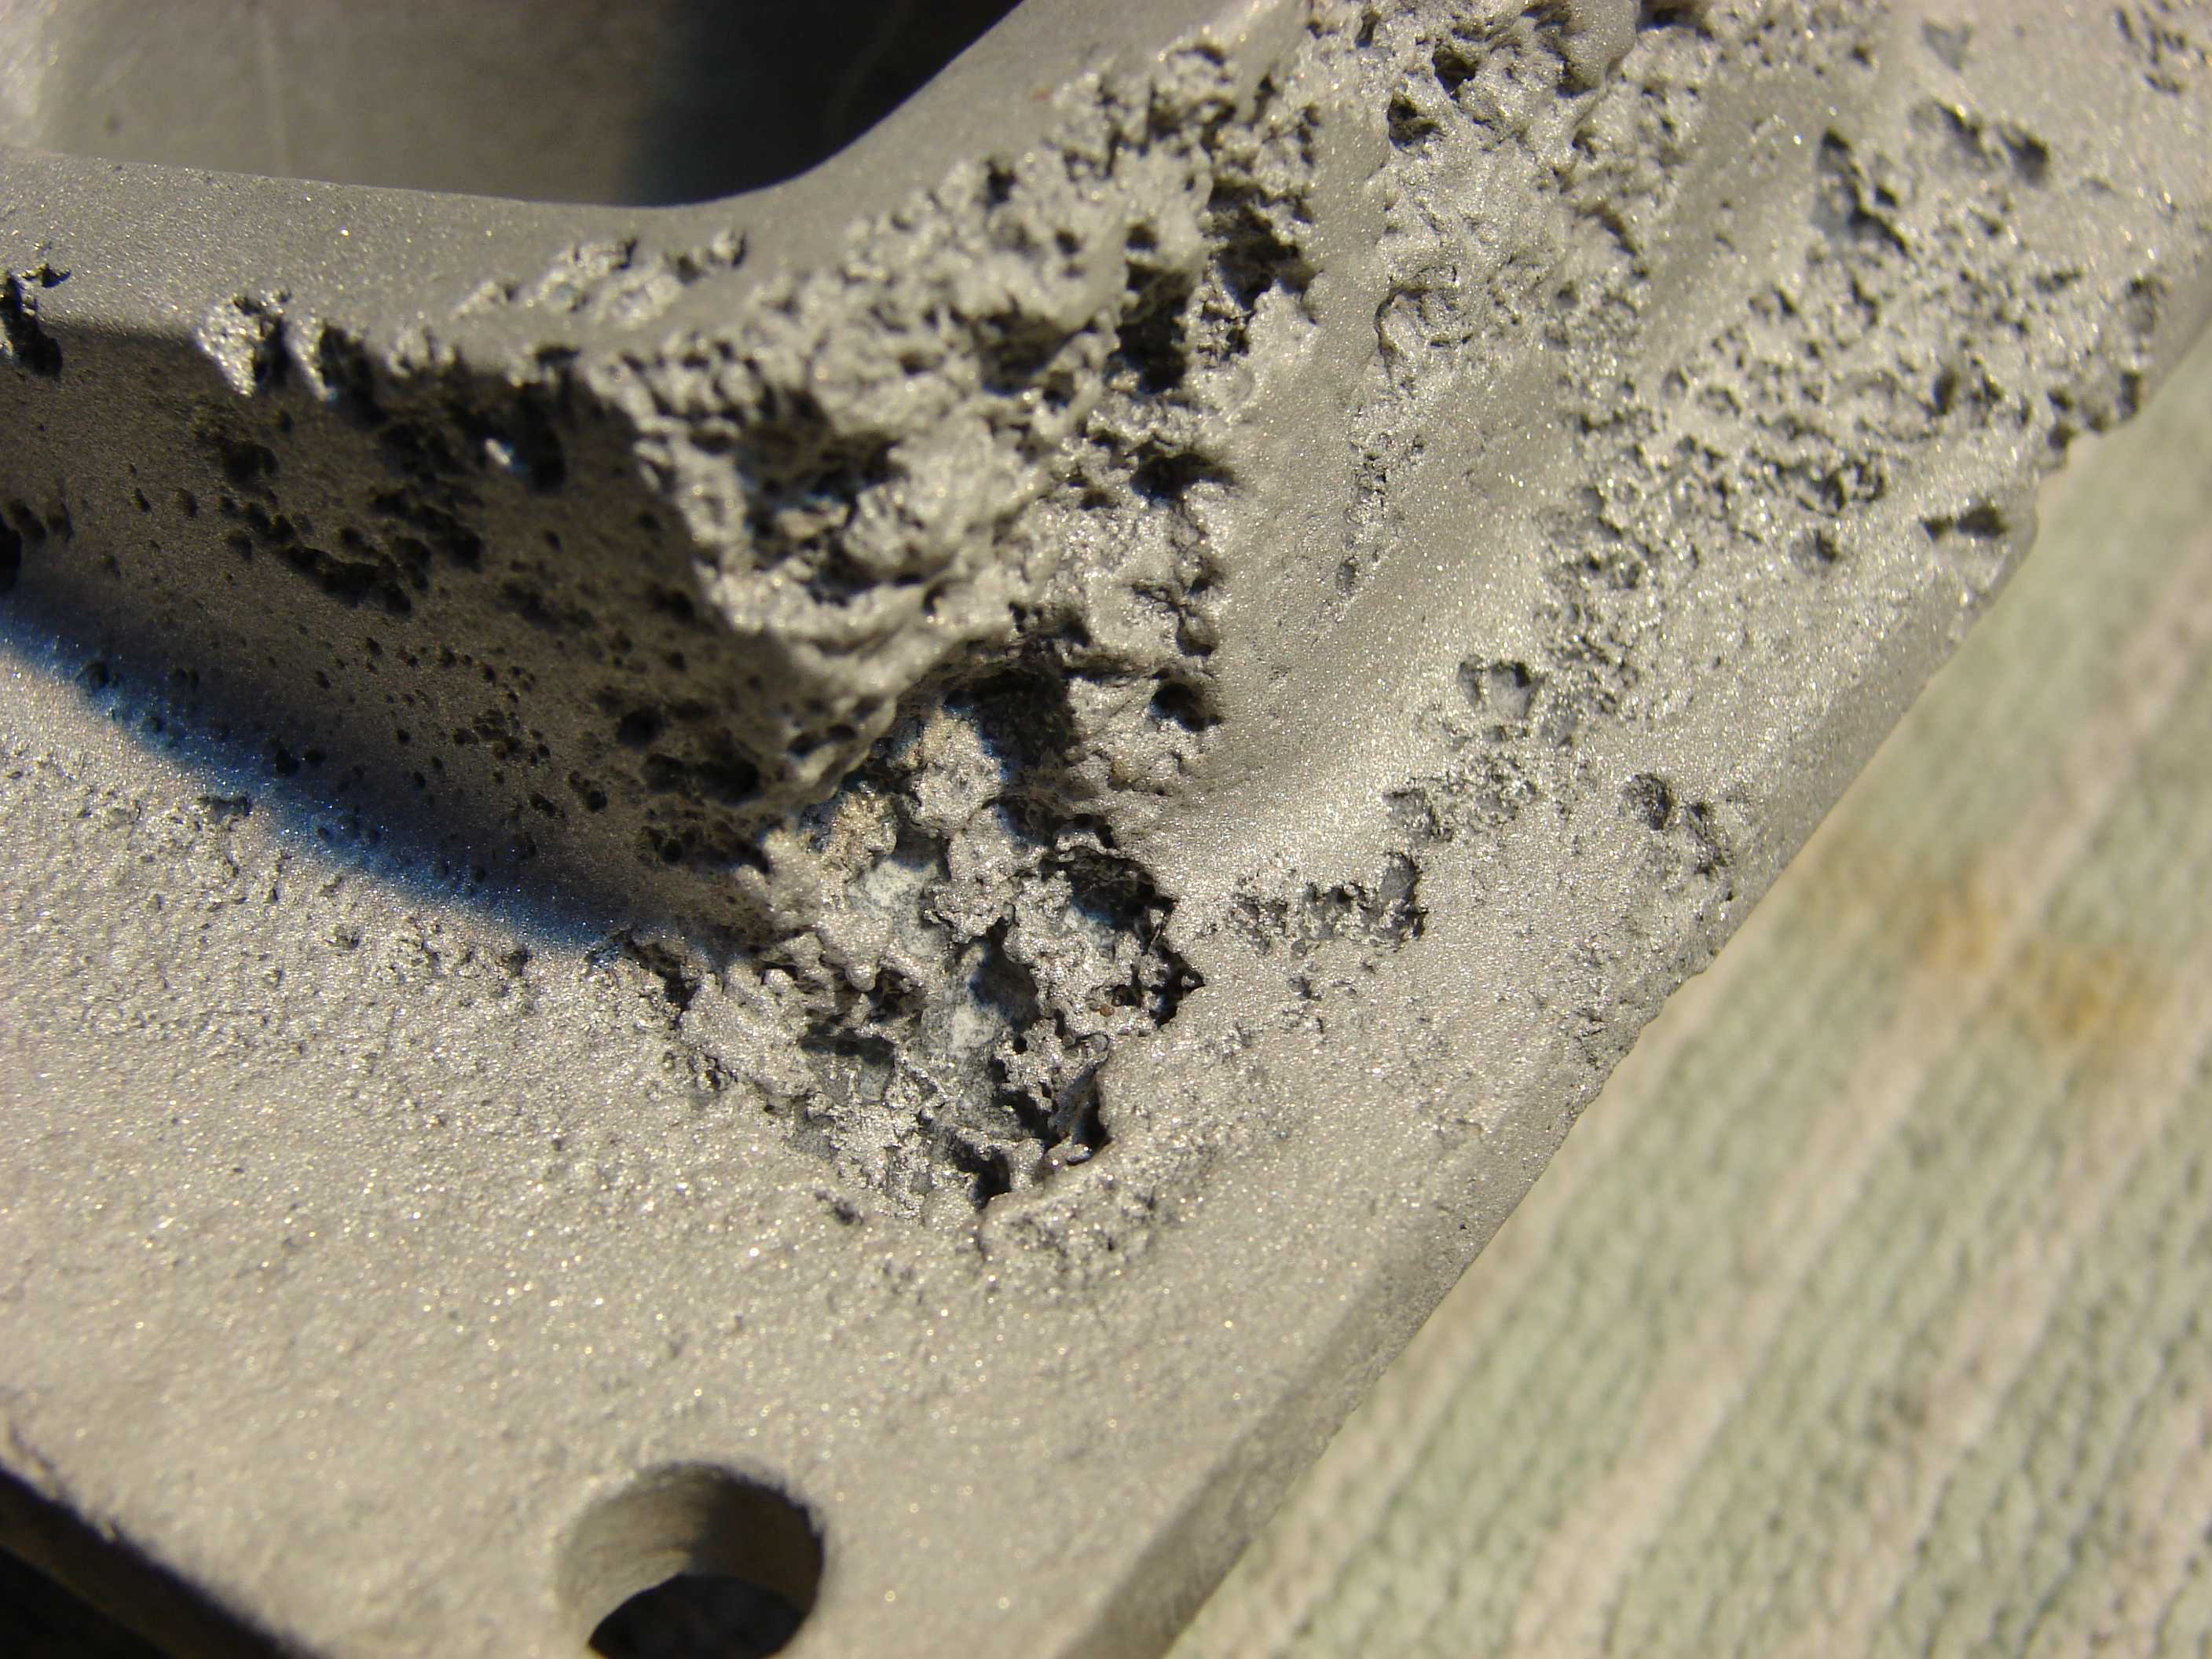 Pitting corrosion on Aluminium part